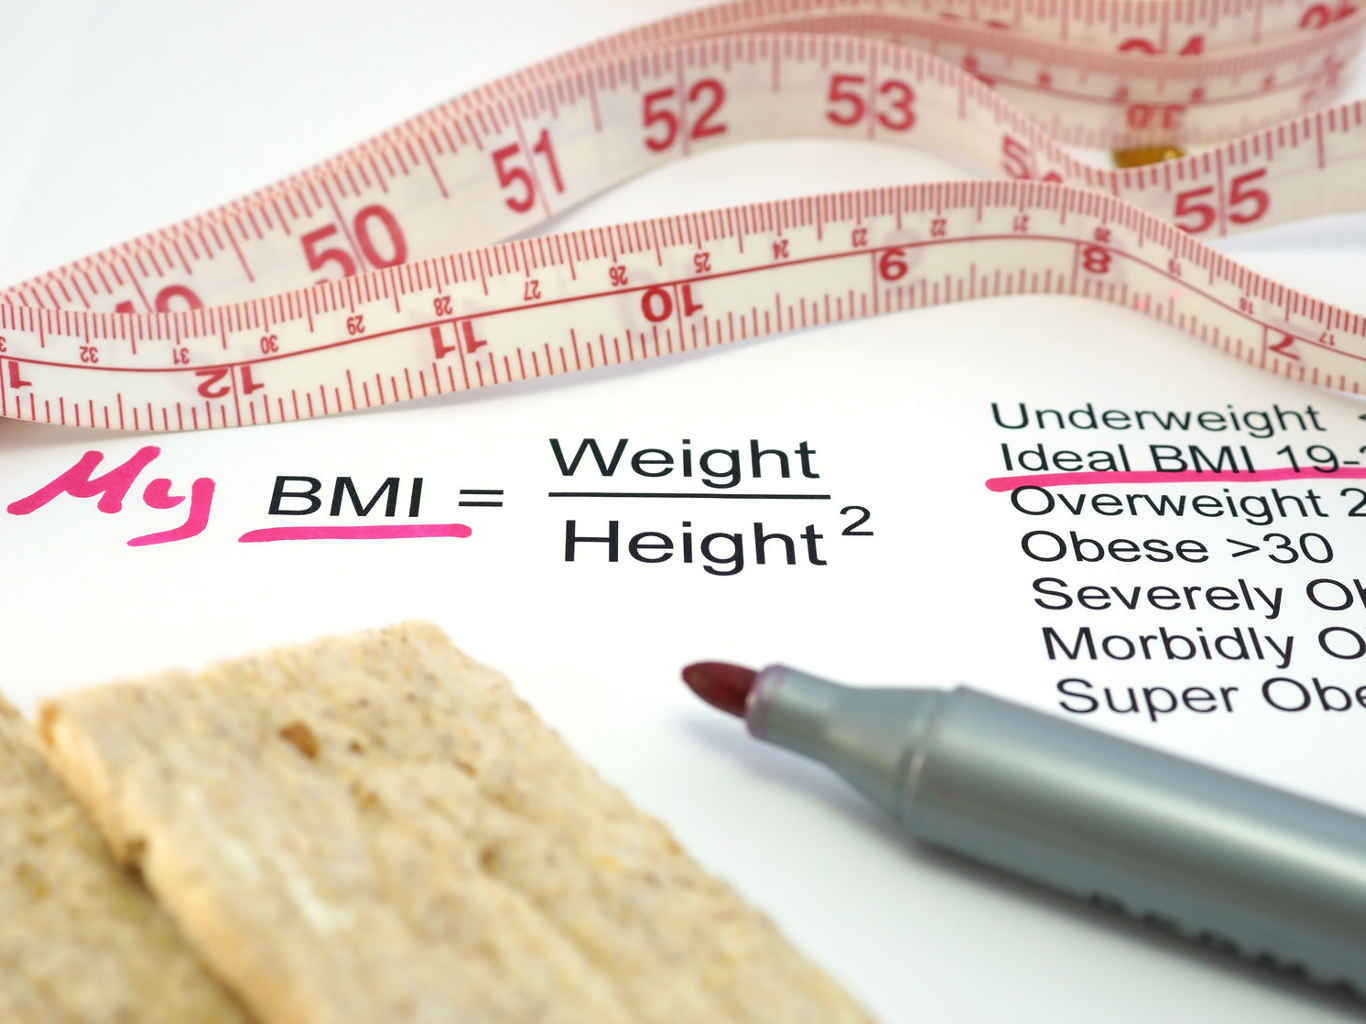 BMI = weight / height ^ 2